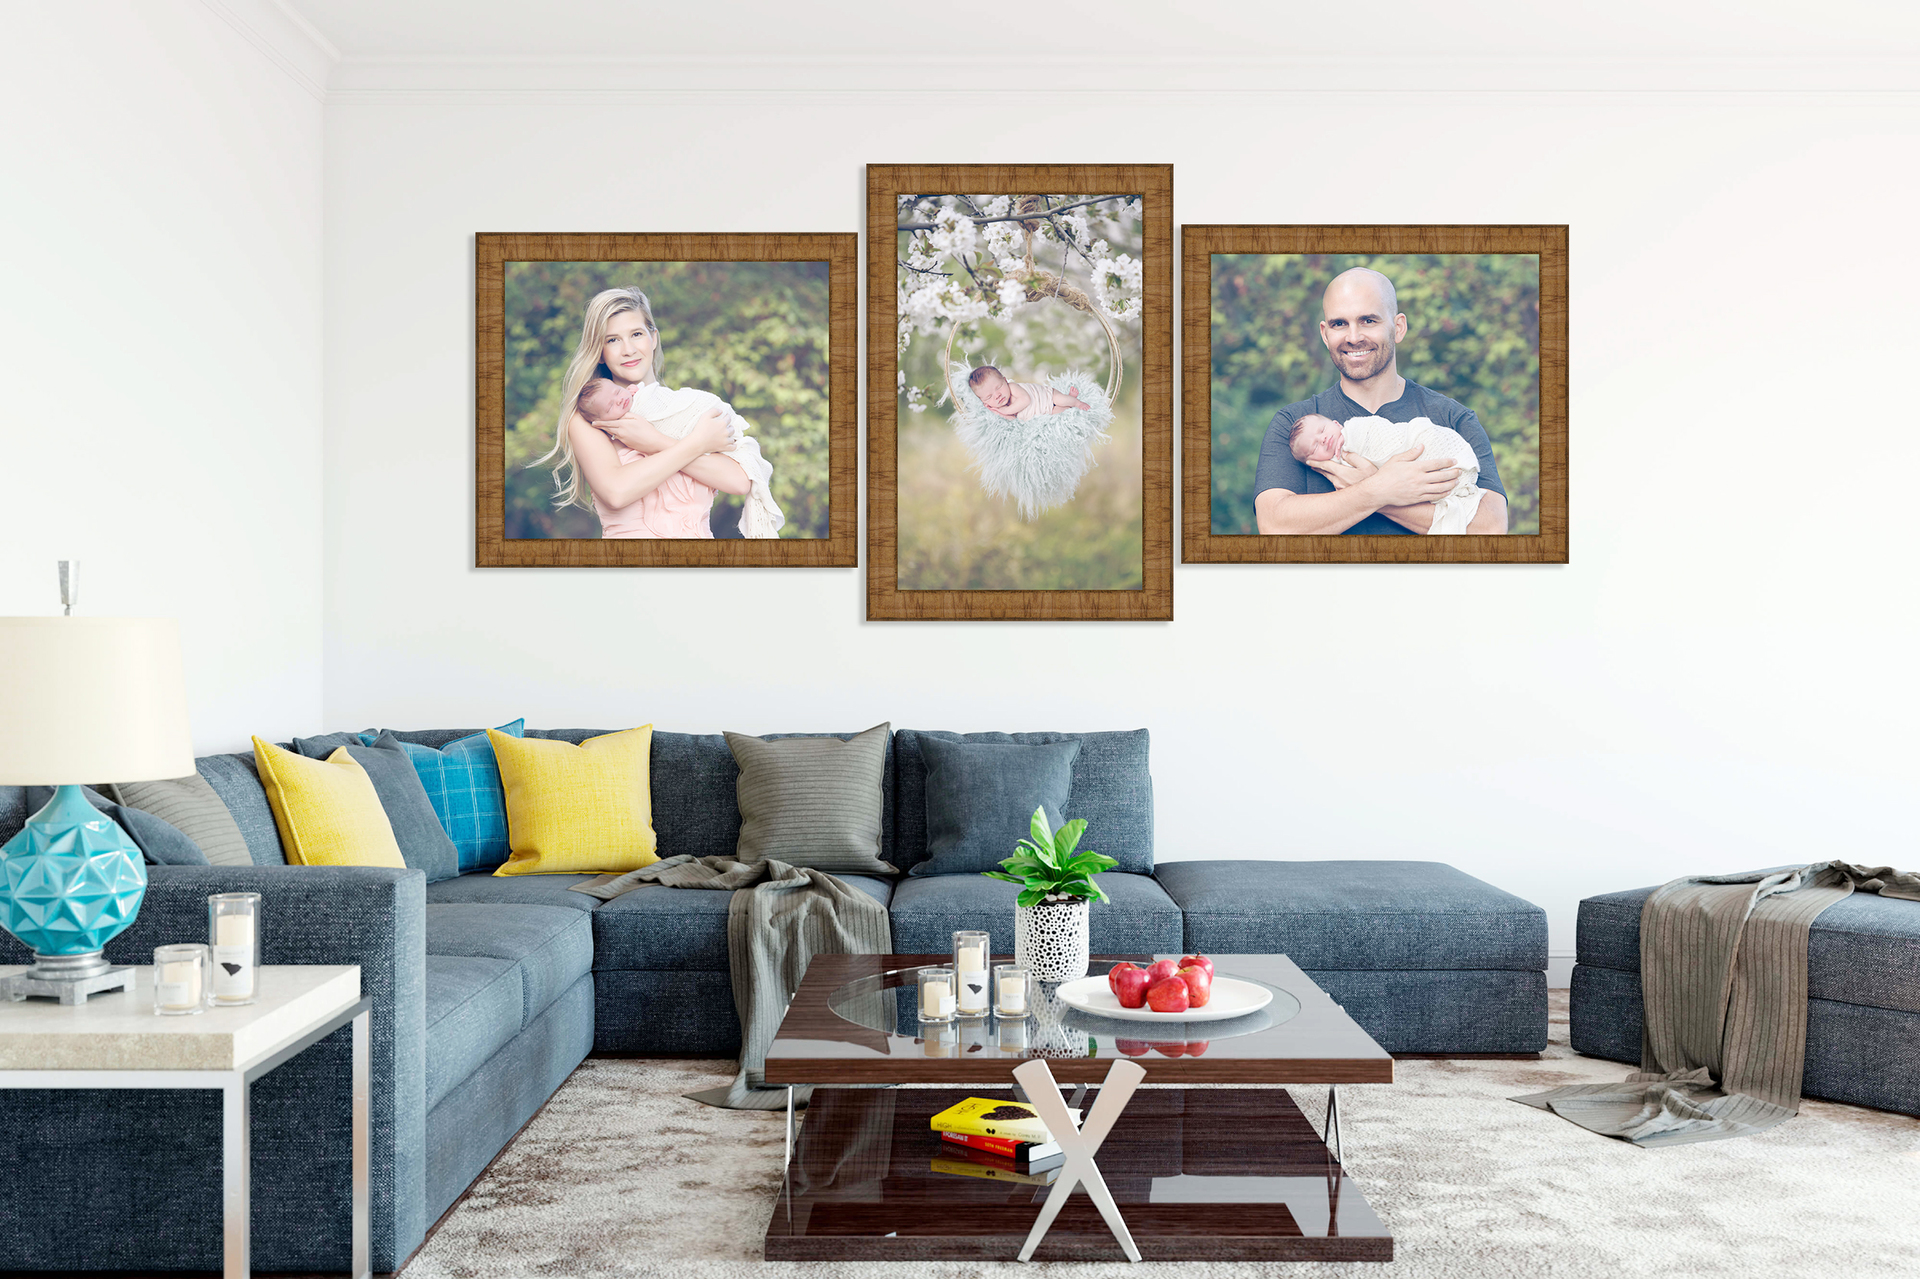 Livingroom showing three pieces of wall art. Outdoors photos taken at Gaby Clark Photography. Newborn in the middle, mom and newborn on the left, dad and newborn on the right.